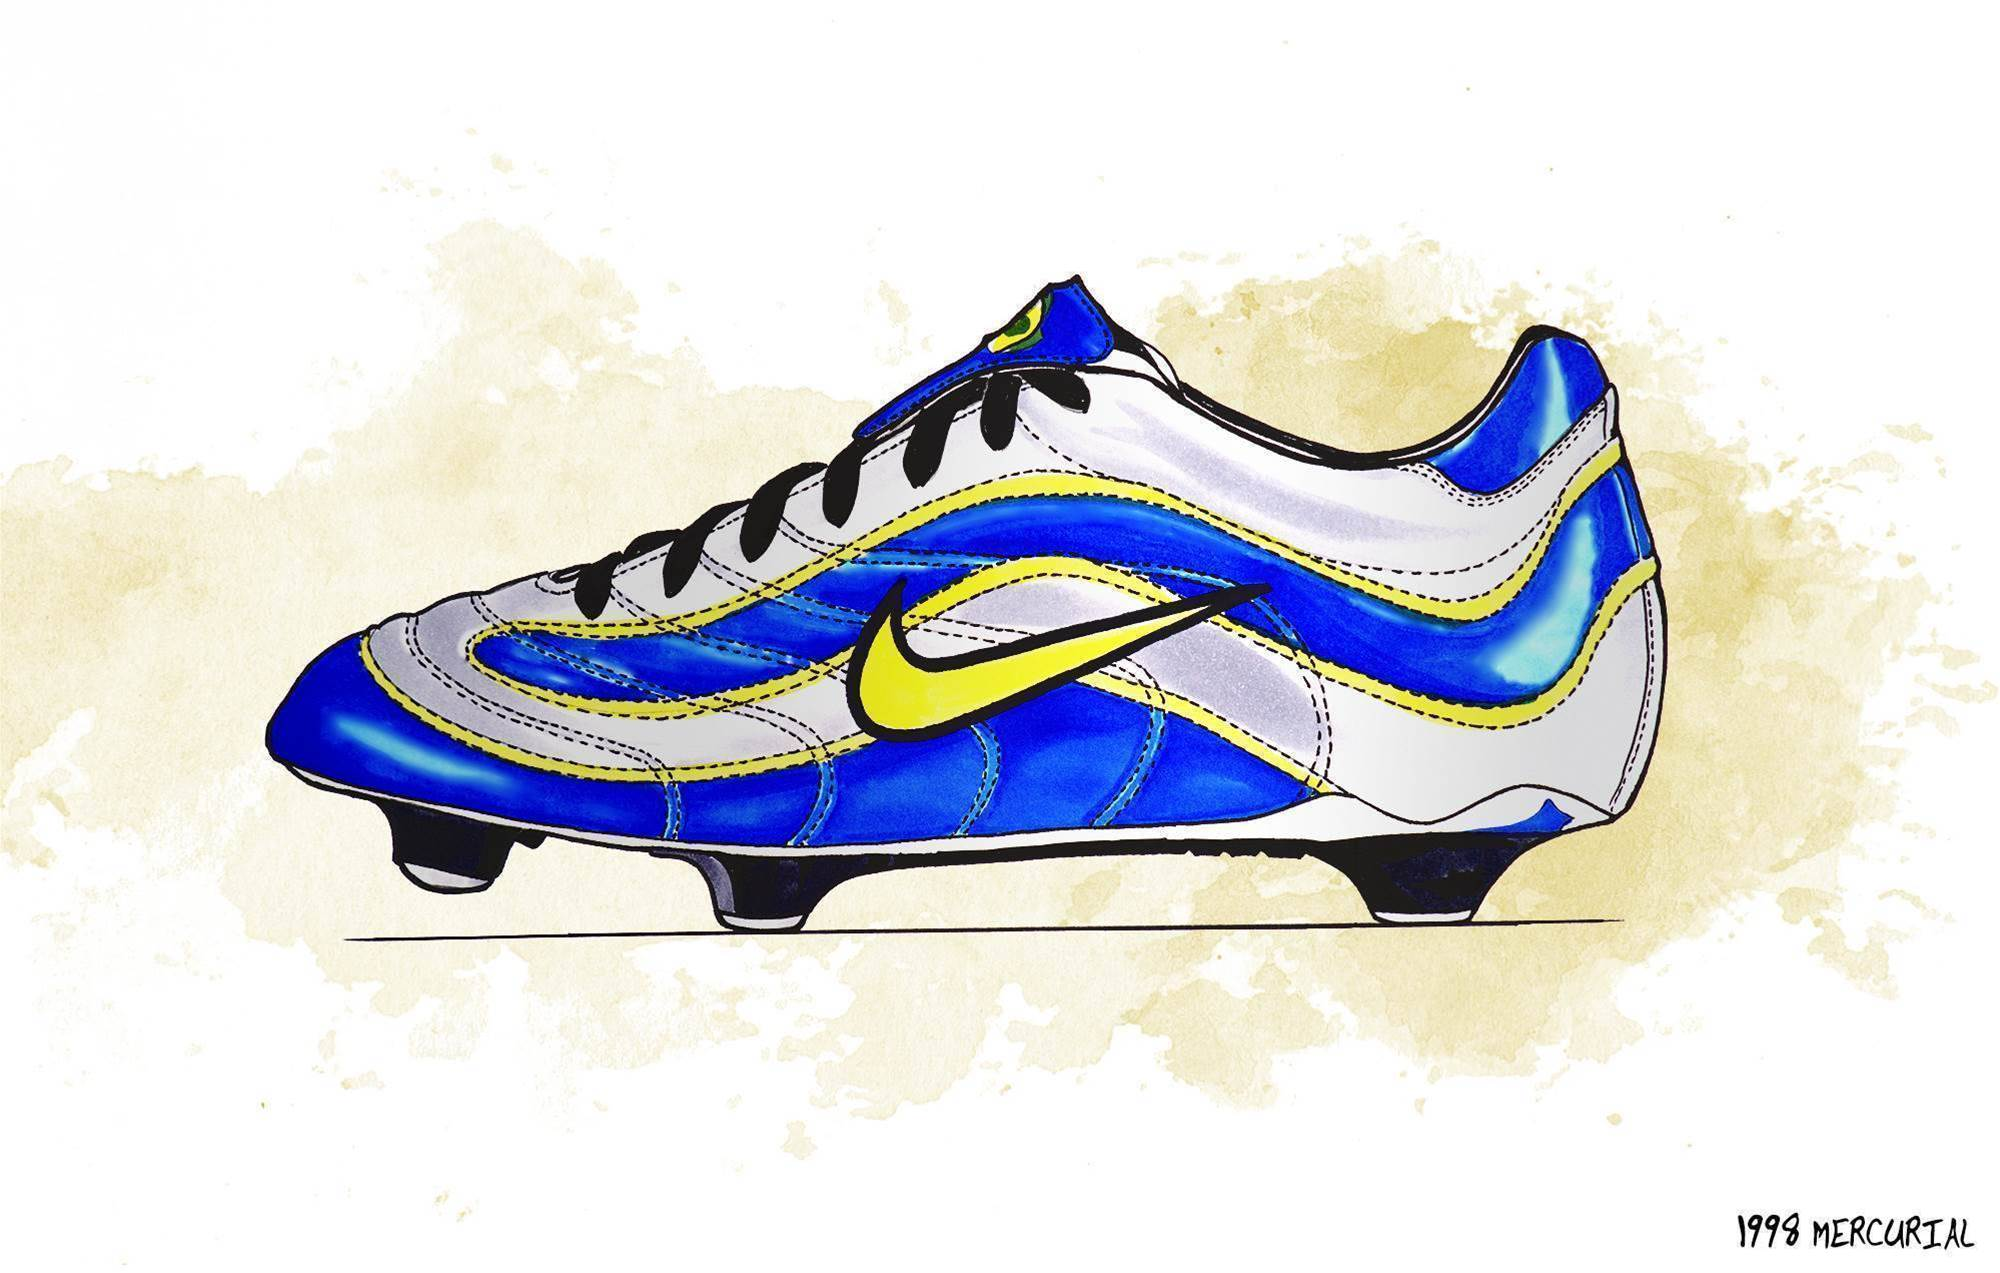 History of the Nike Mercurial